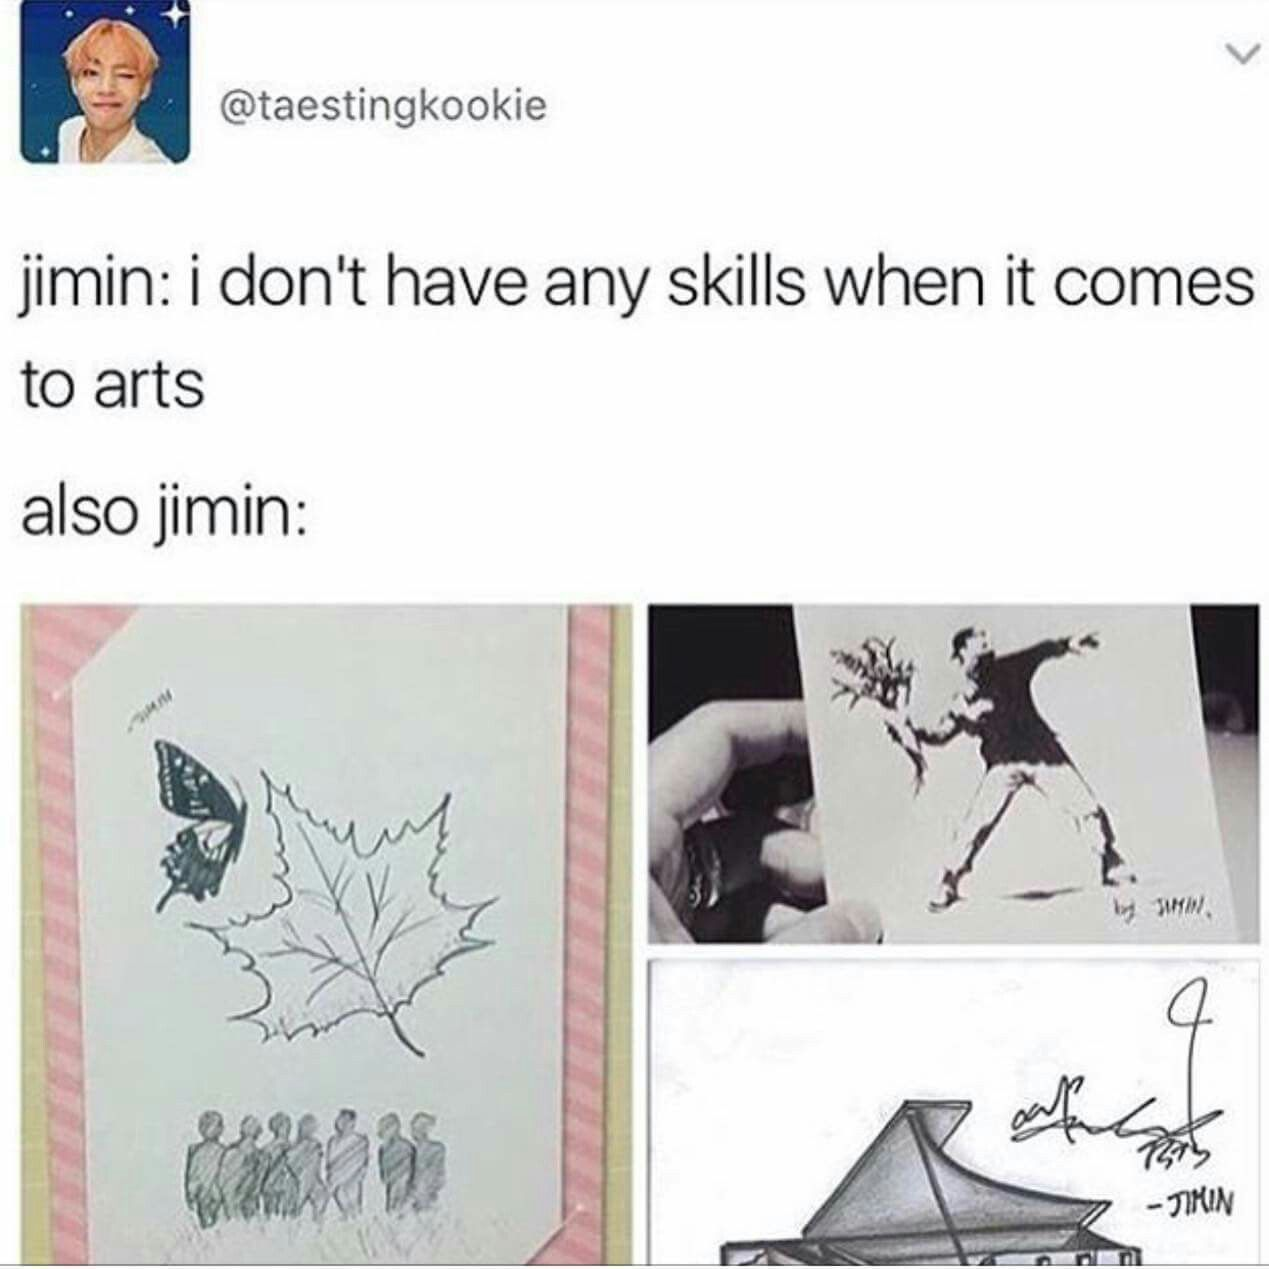 Pin By Drea Goecks On ChimChim Pinterest BTS Kpop And Jimin